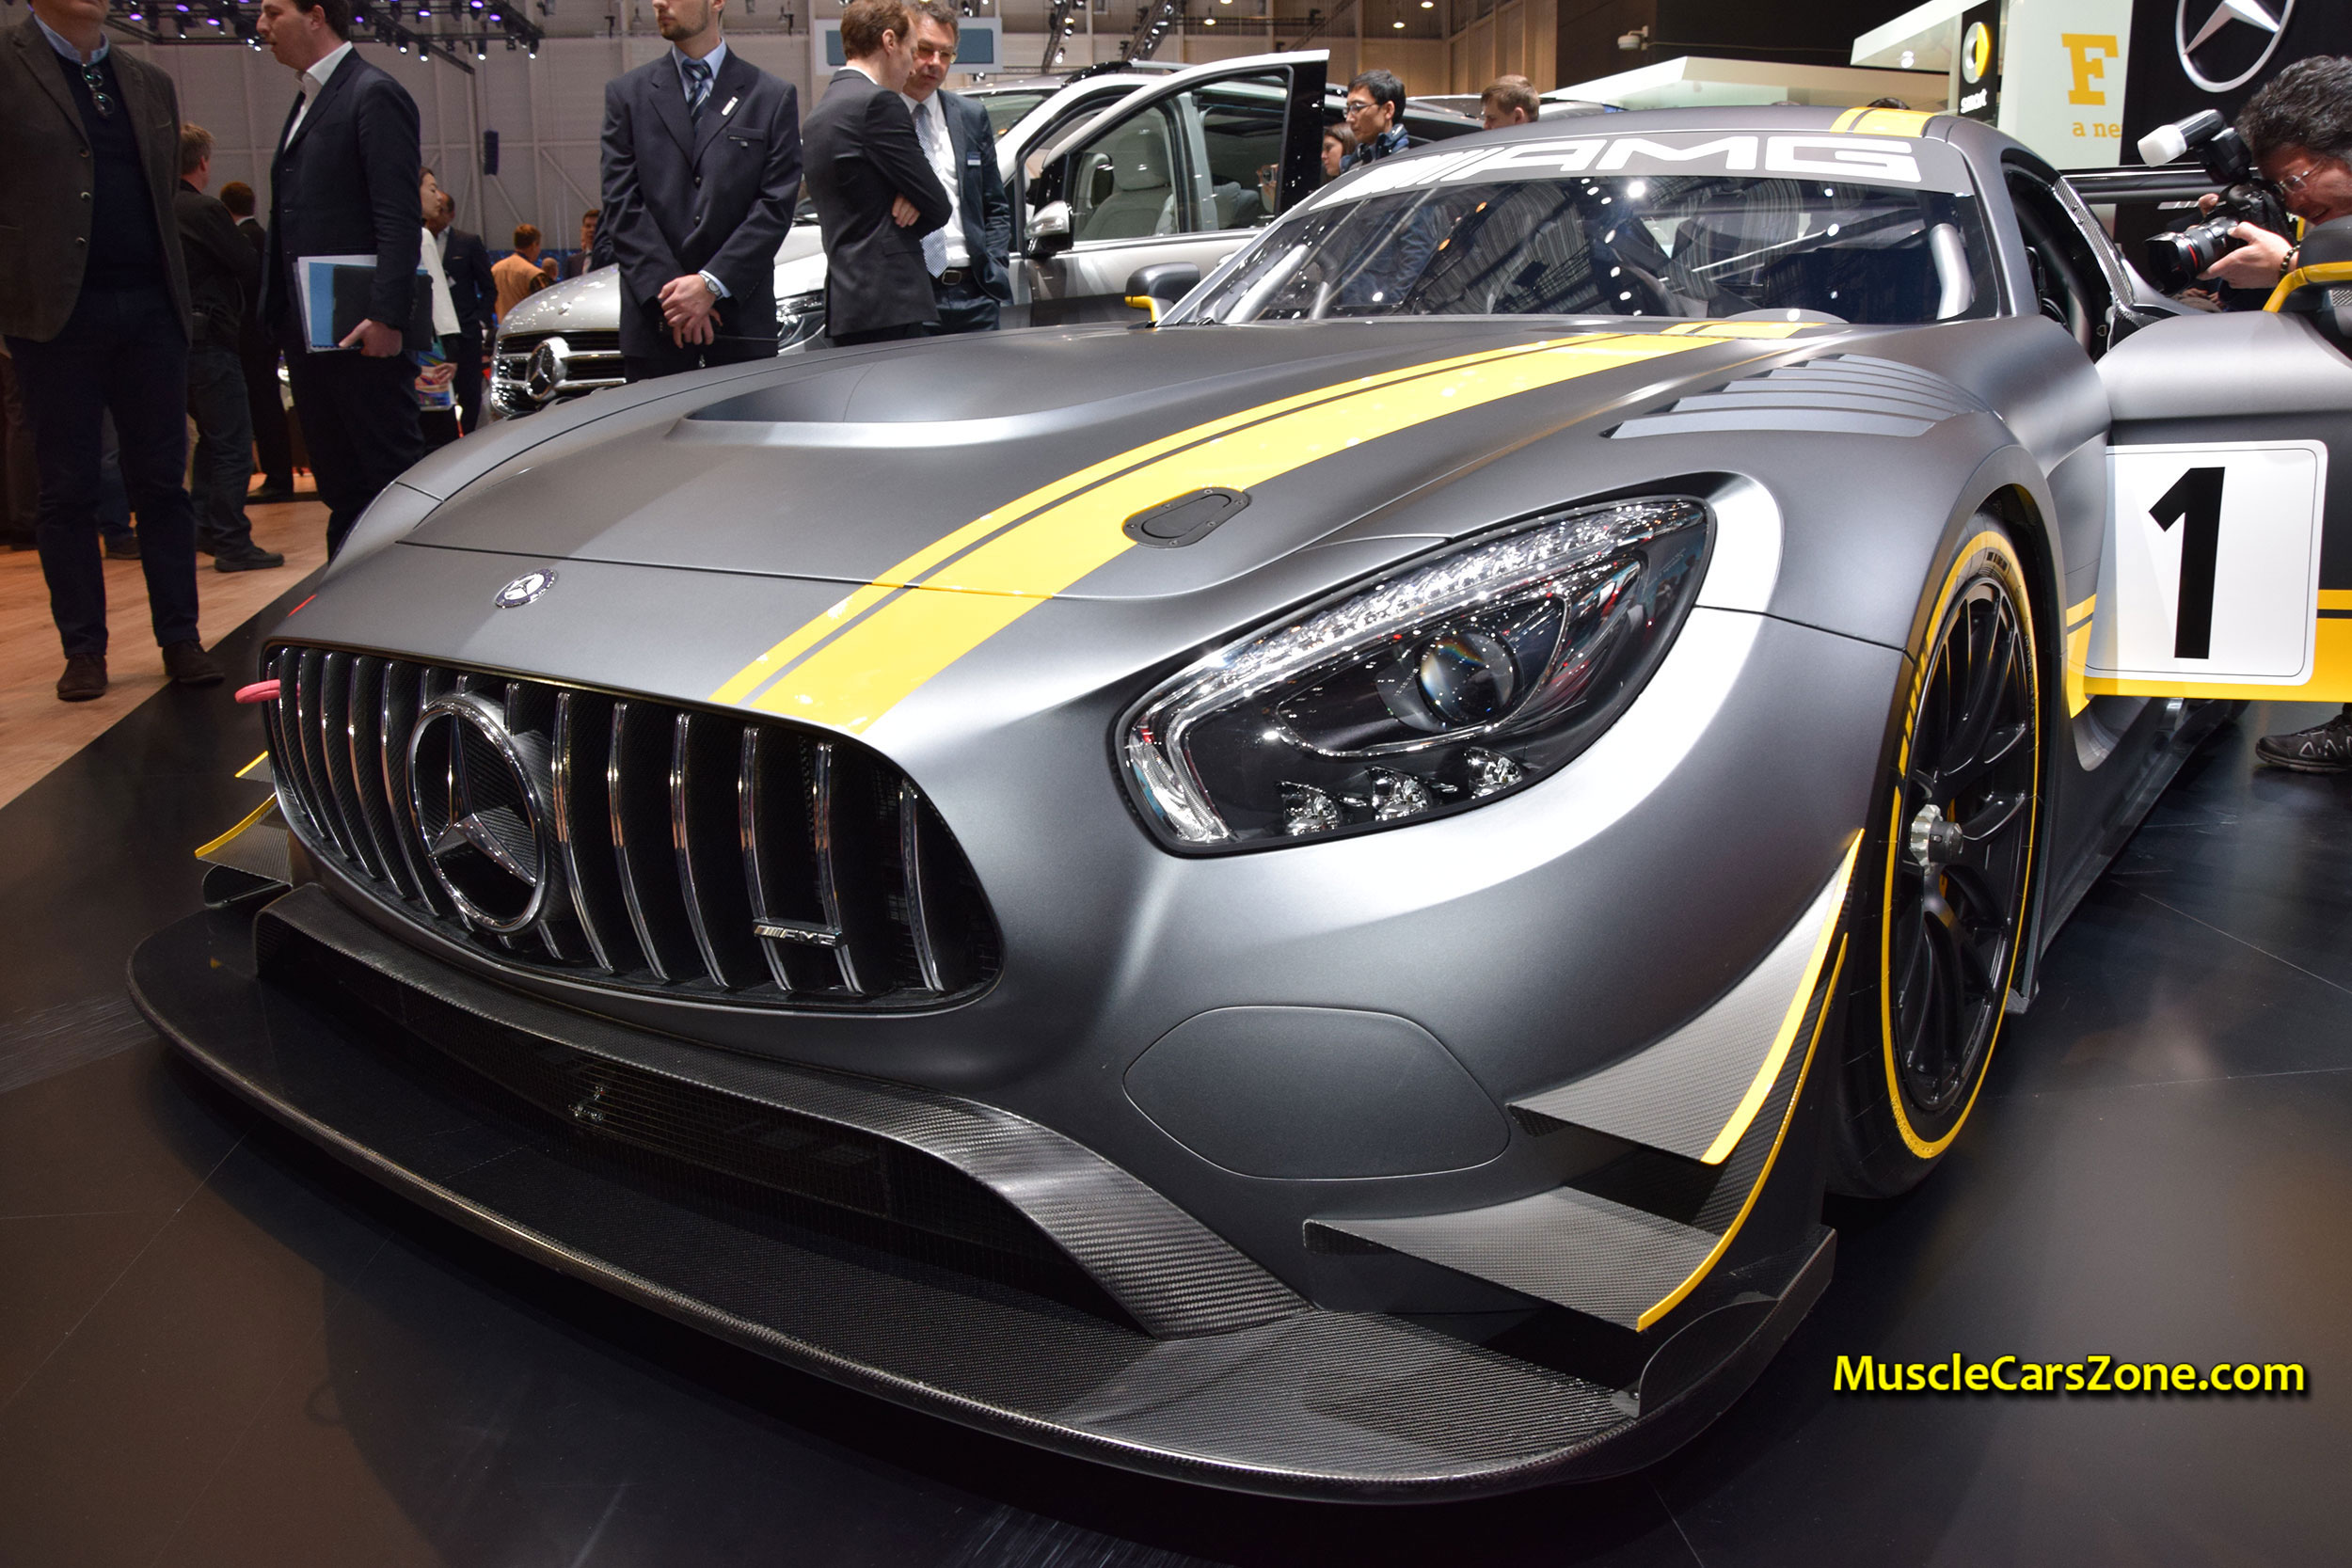 2015 mercedes amg gt3 race car 19 2015 geneva motor show - Mercedes car show ...